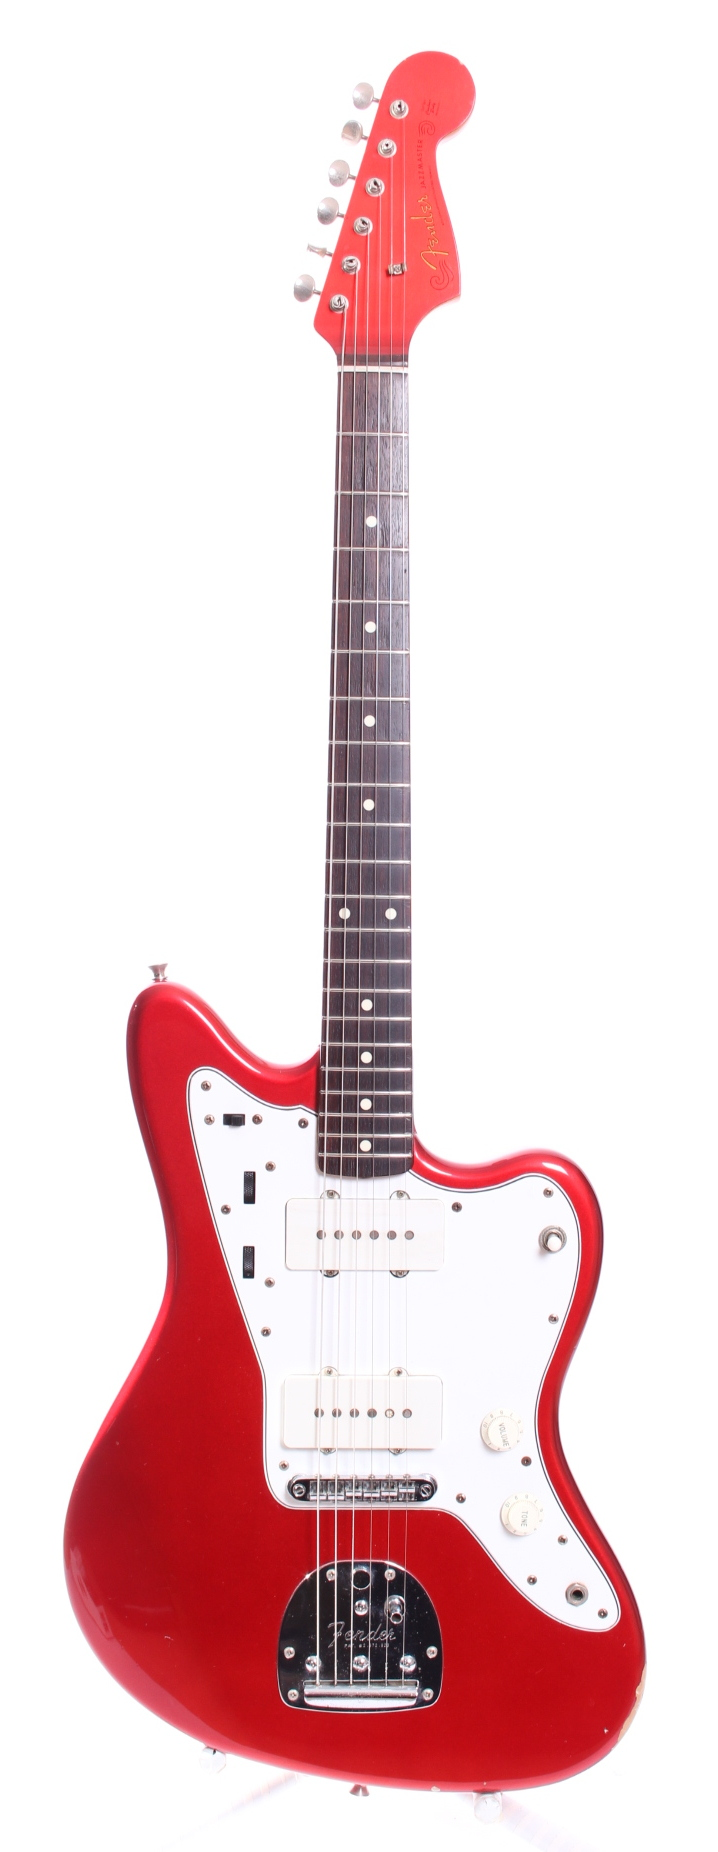 Fender Stratocaster - Reissue Strat Serial Numbers The